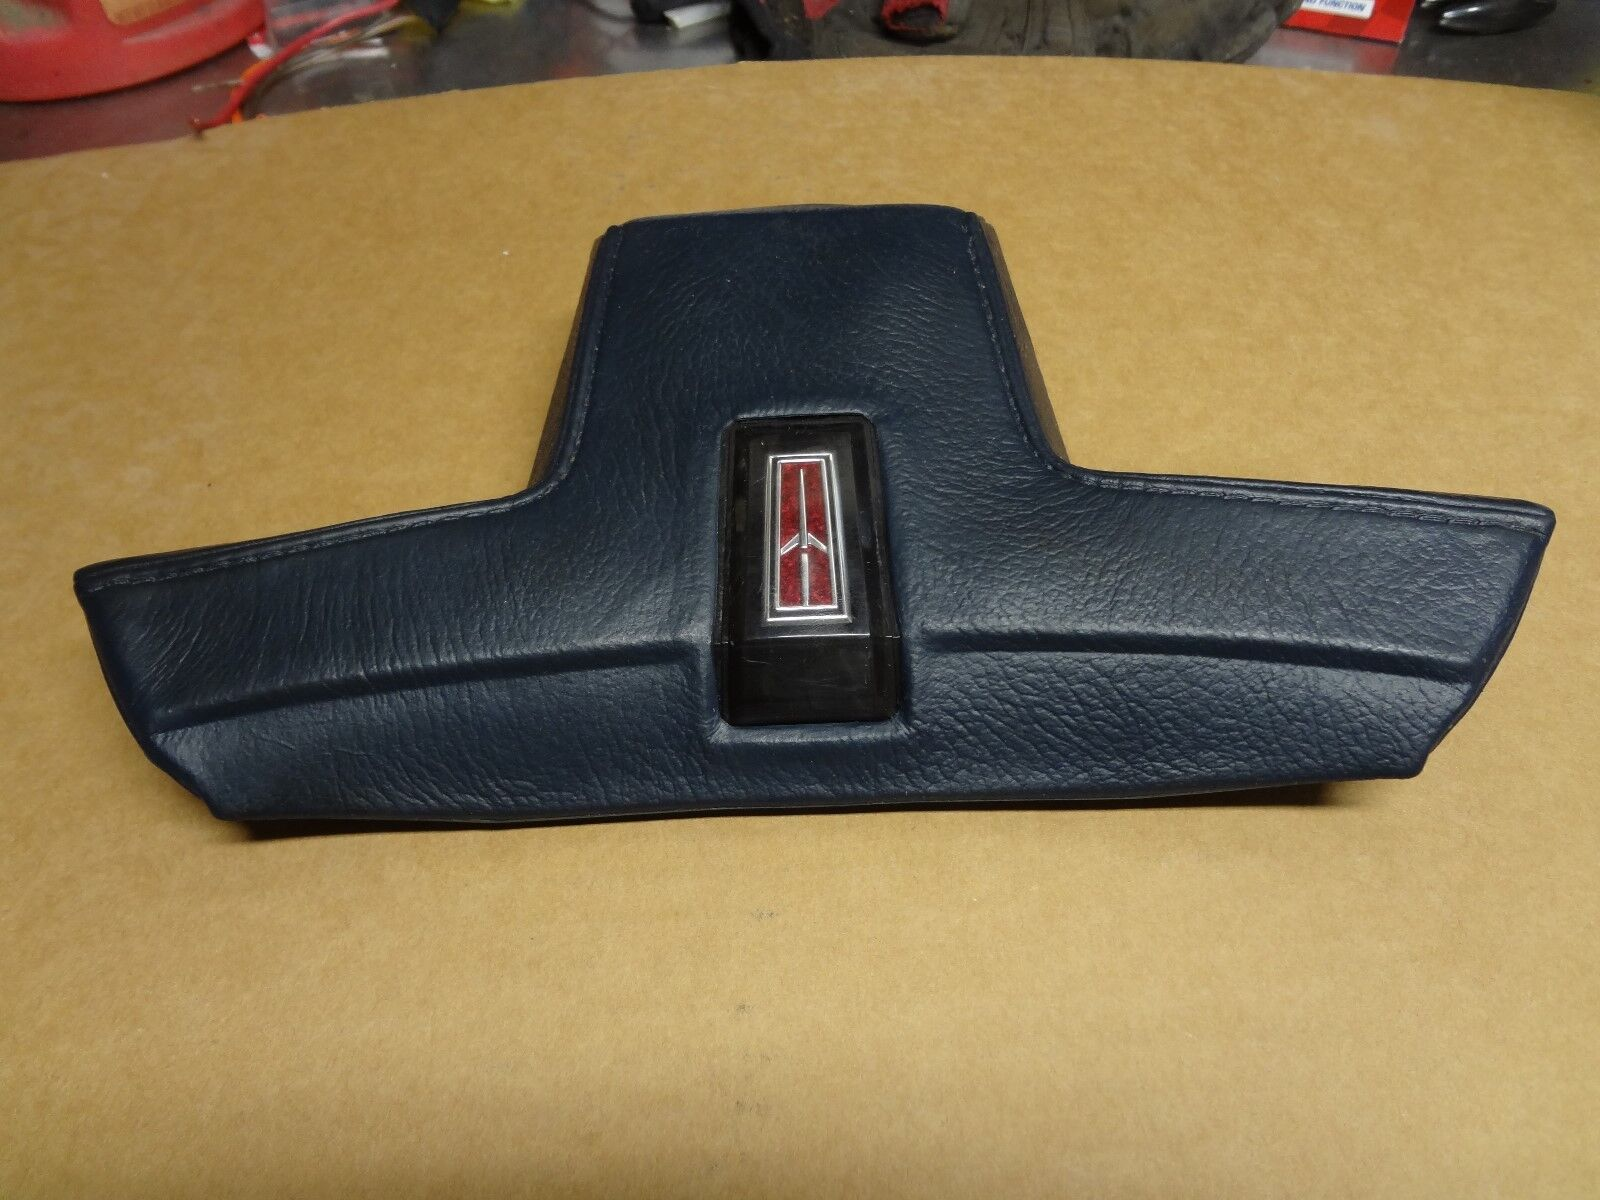 Used Oldsmobile Cutlass Supreme Interior Parts for Sale